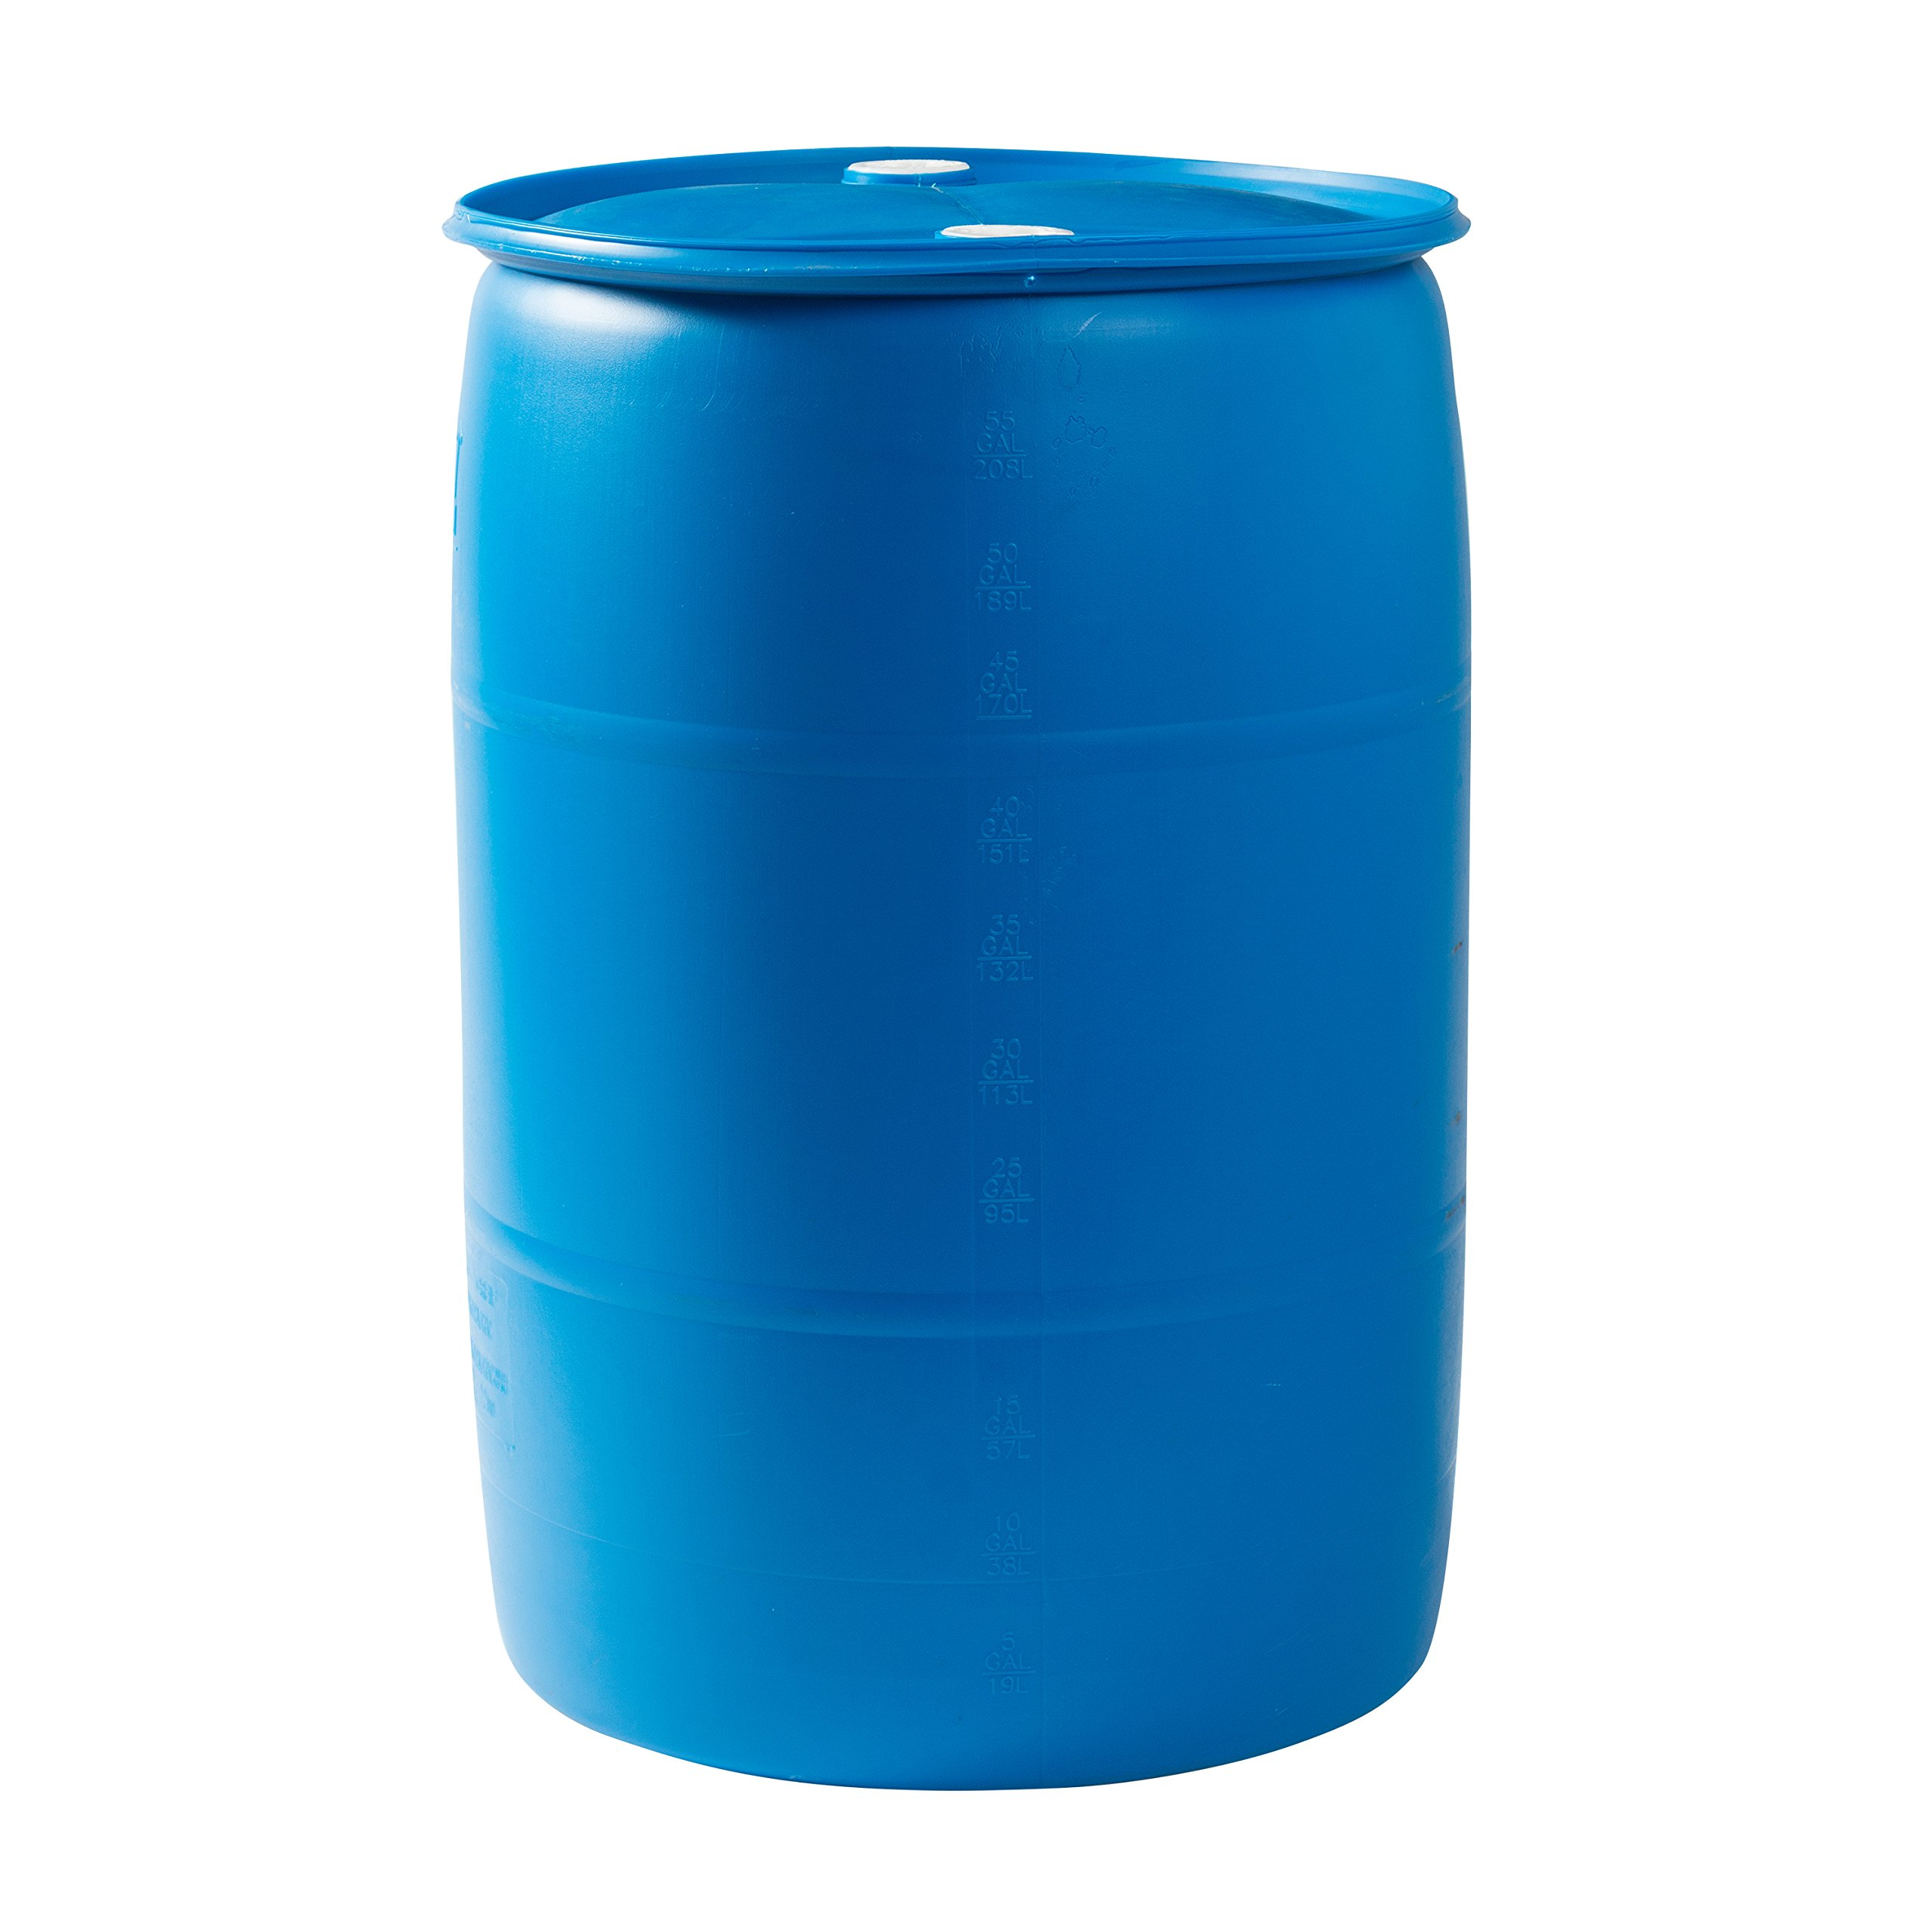 Augason Farms Water Storage Barrel 55-Gallon Drum by Augason Farms